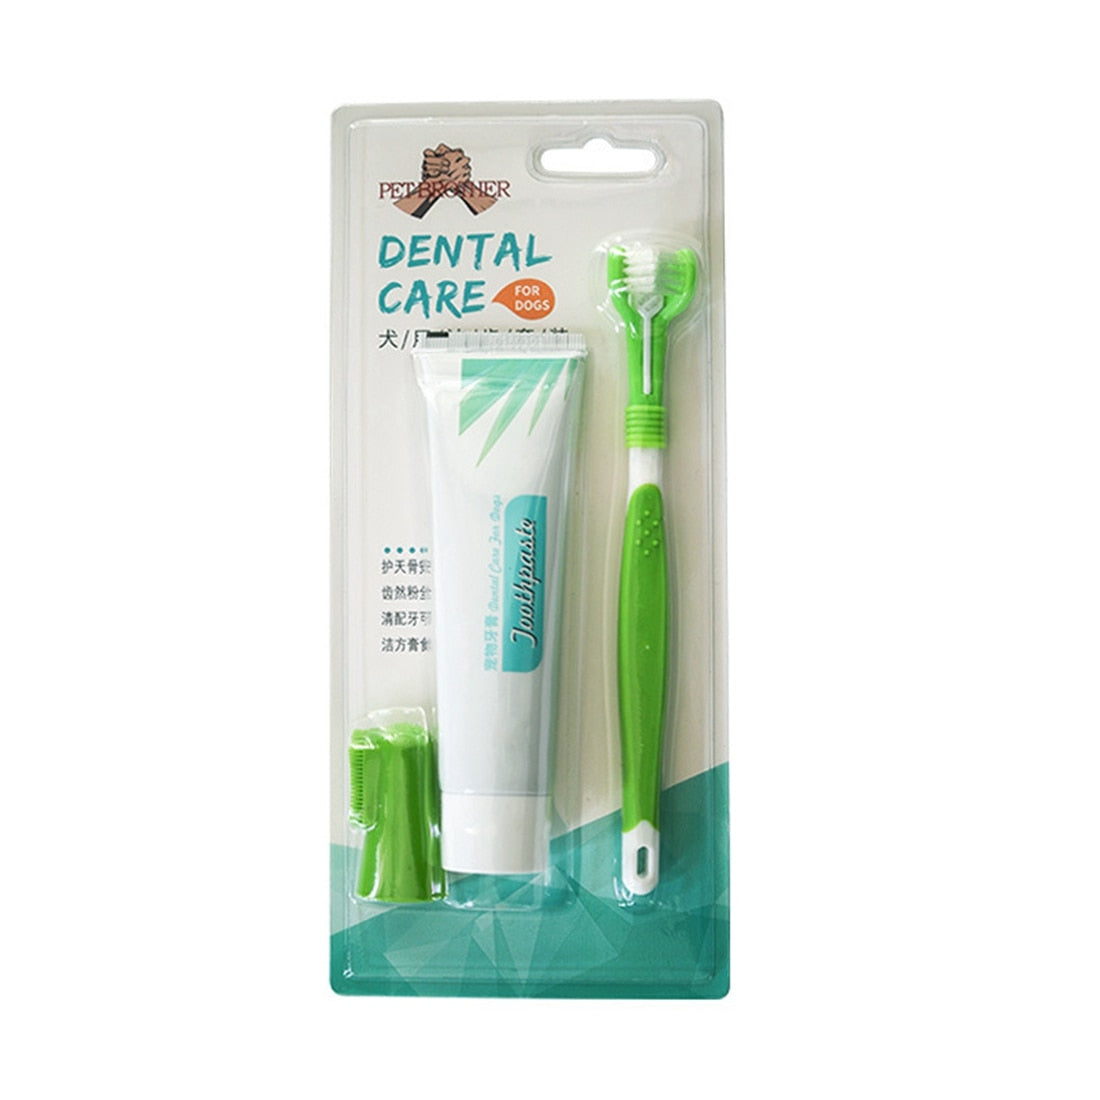 3 sets of dog pet finger toothbrush three head toothbrush toothpaste set pet health dental care toothpaste tooth calculus in a